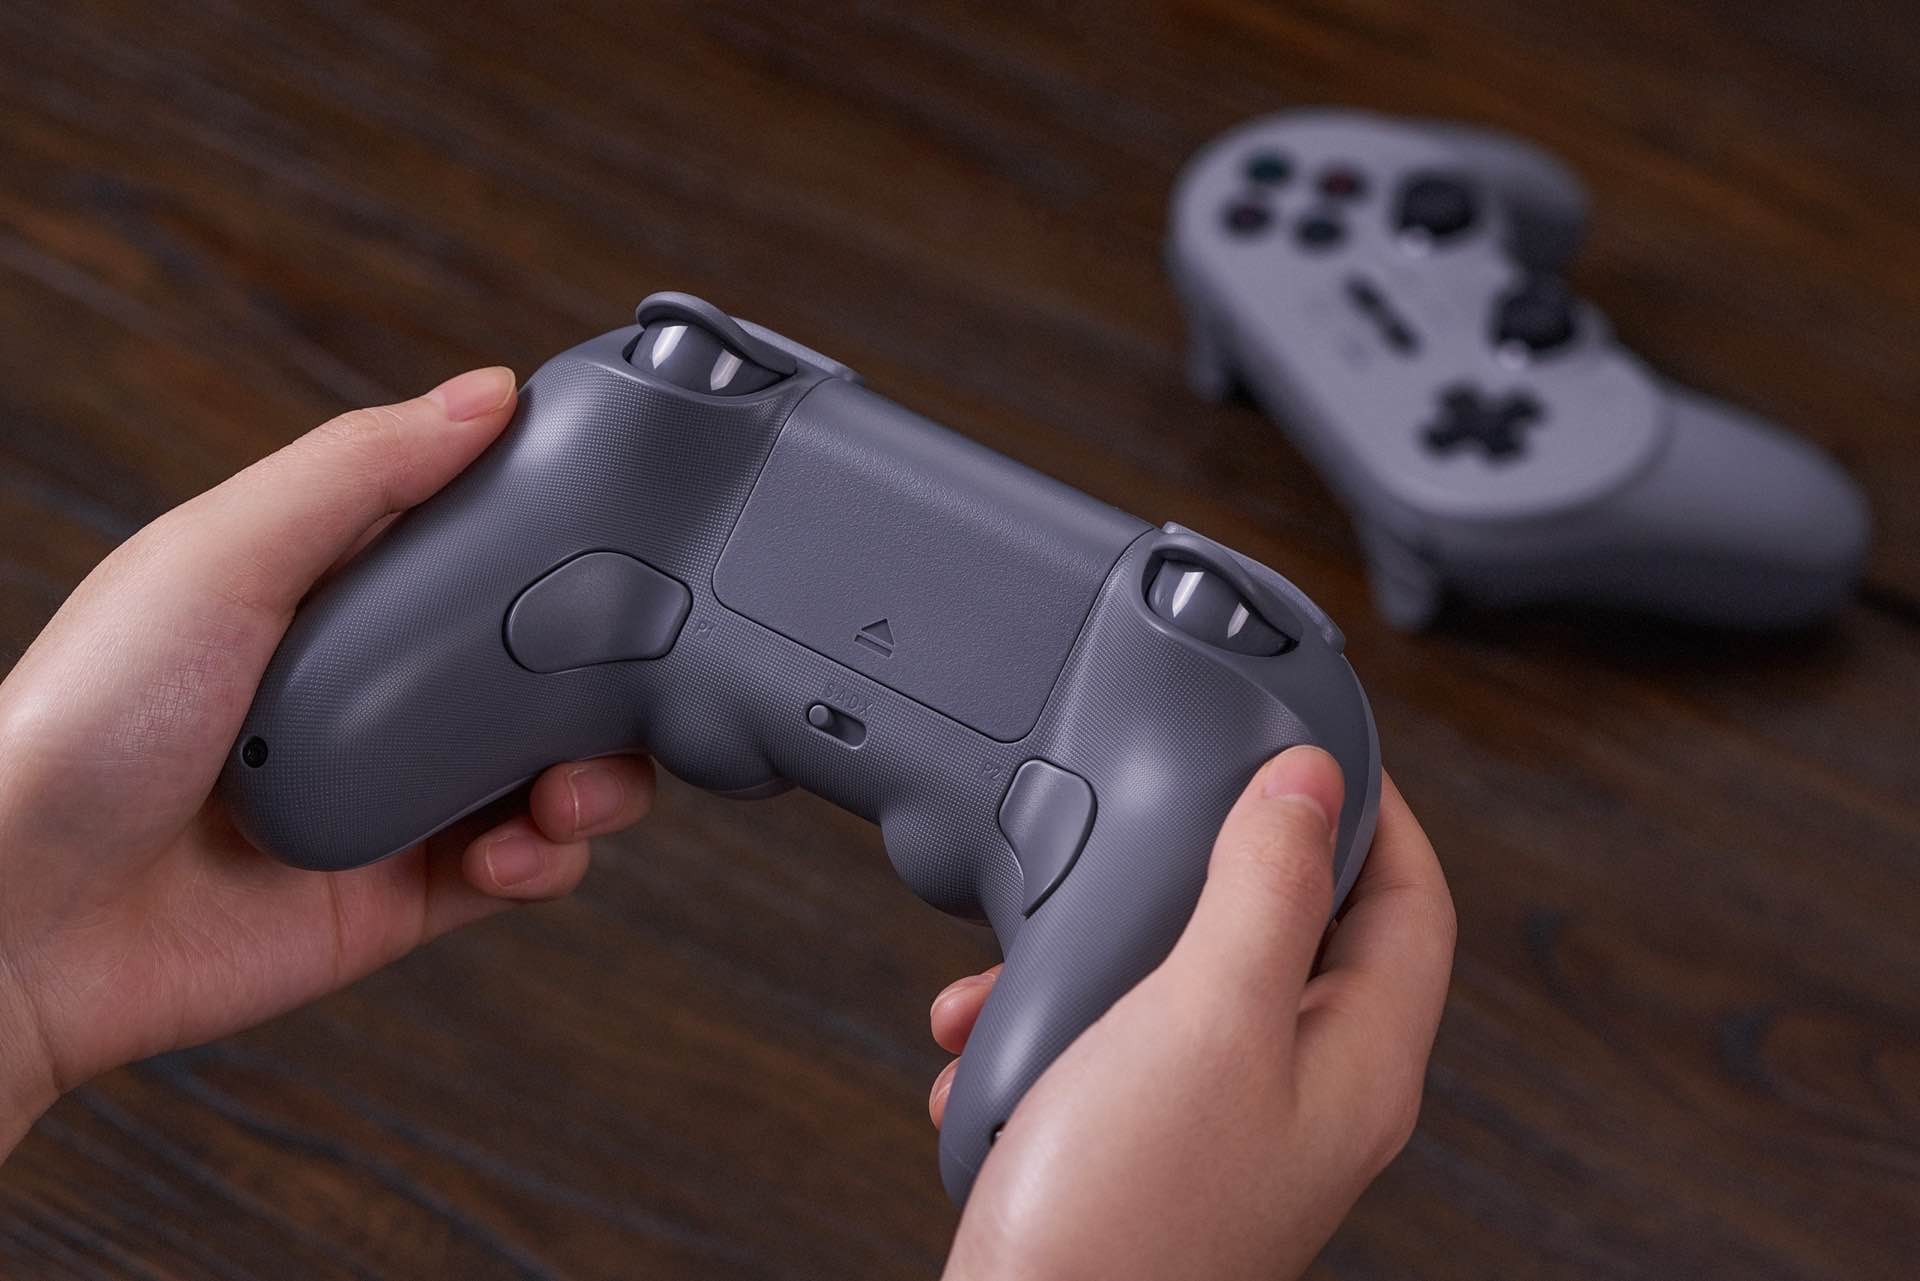 8bitdo-pro-2-game-controller-rear-buttons-switch